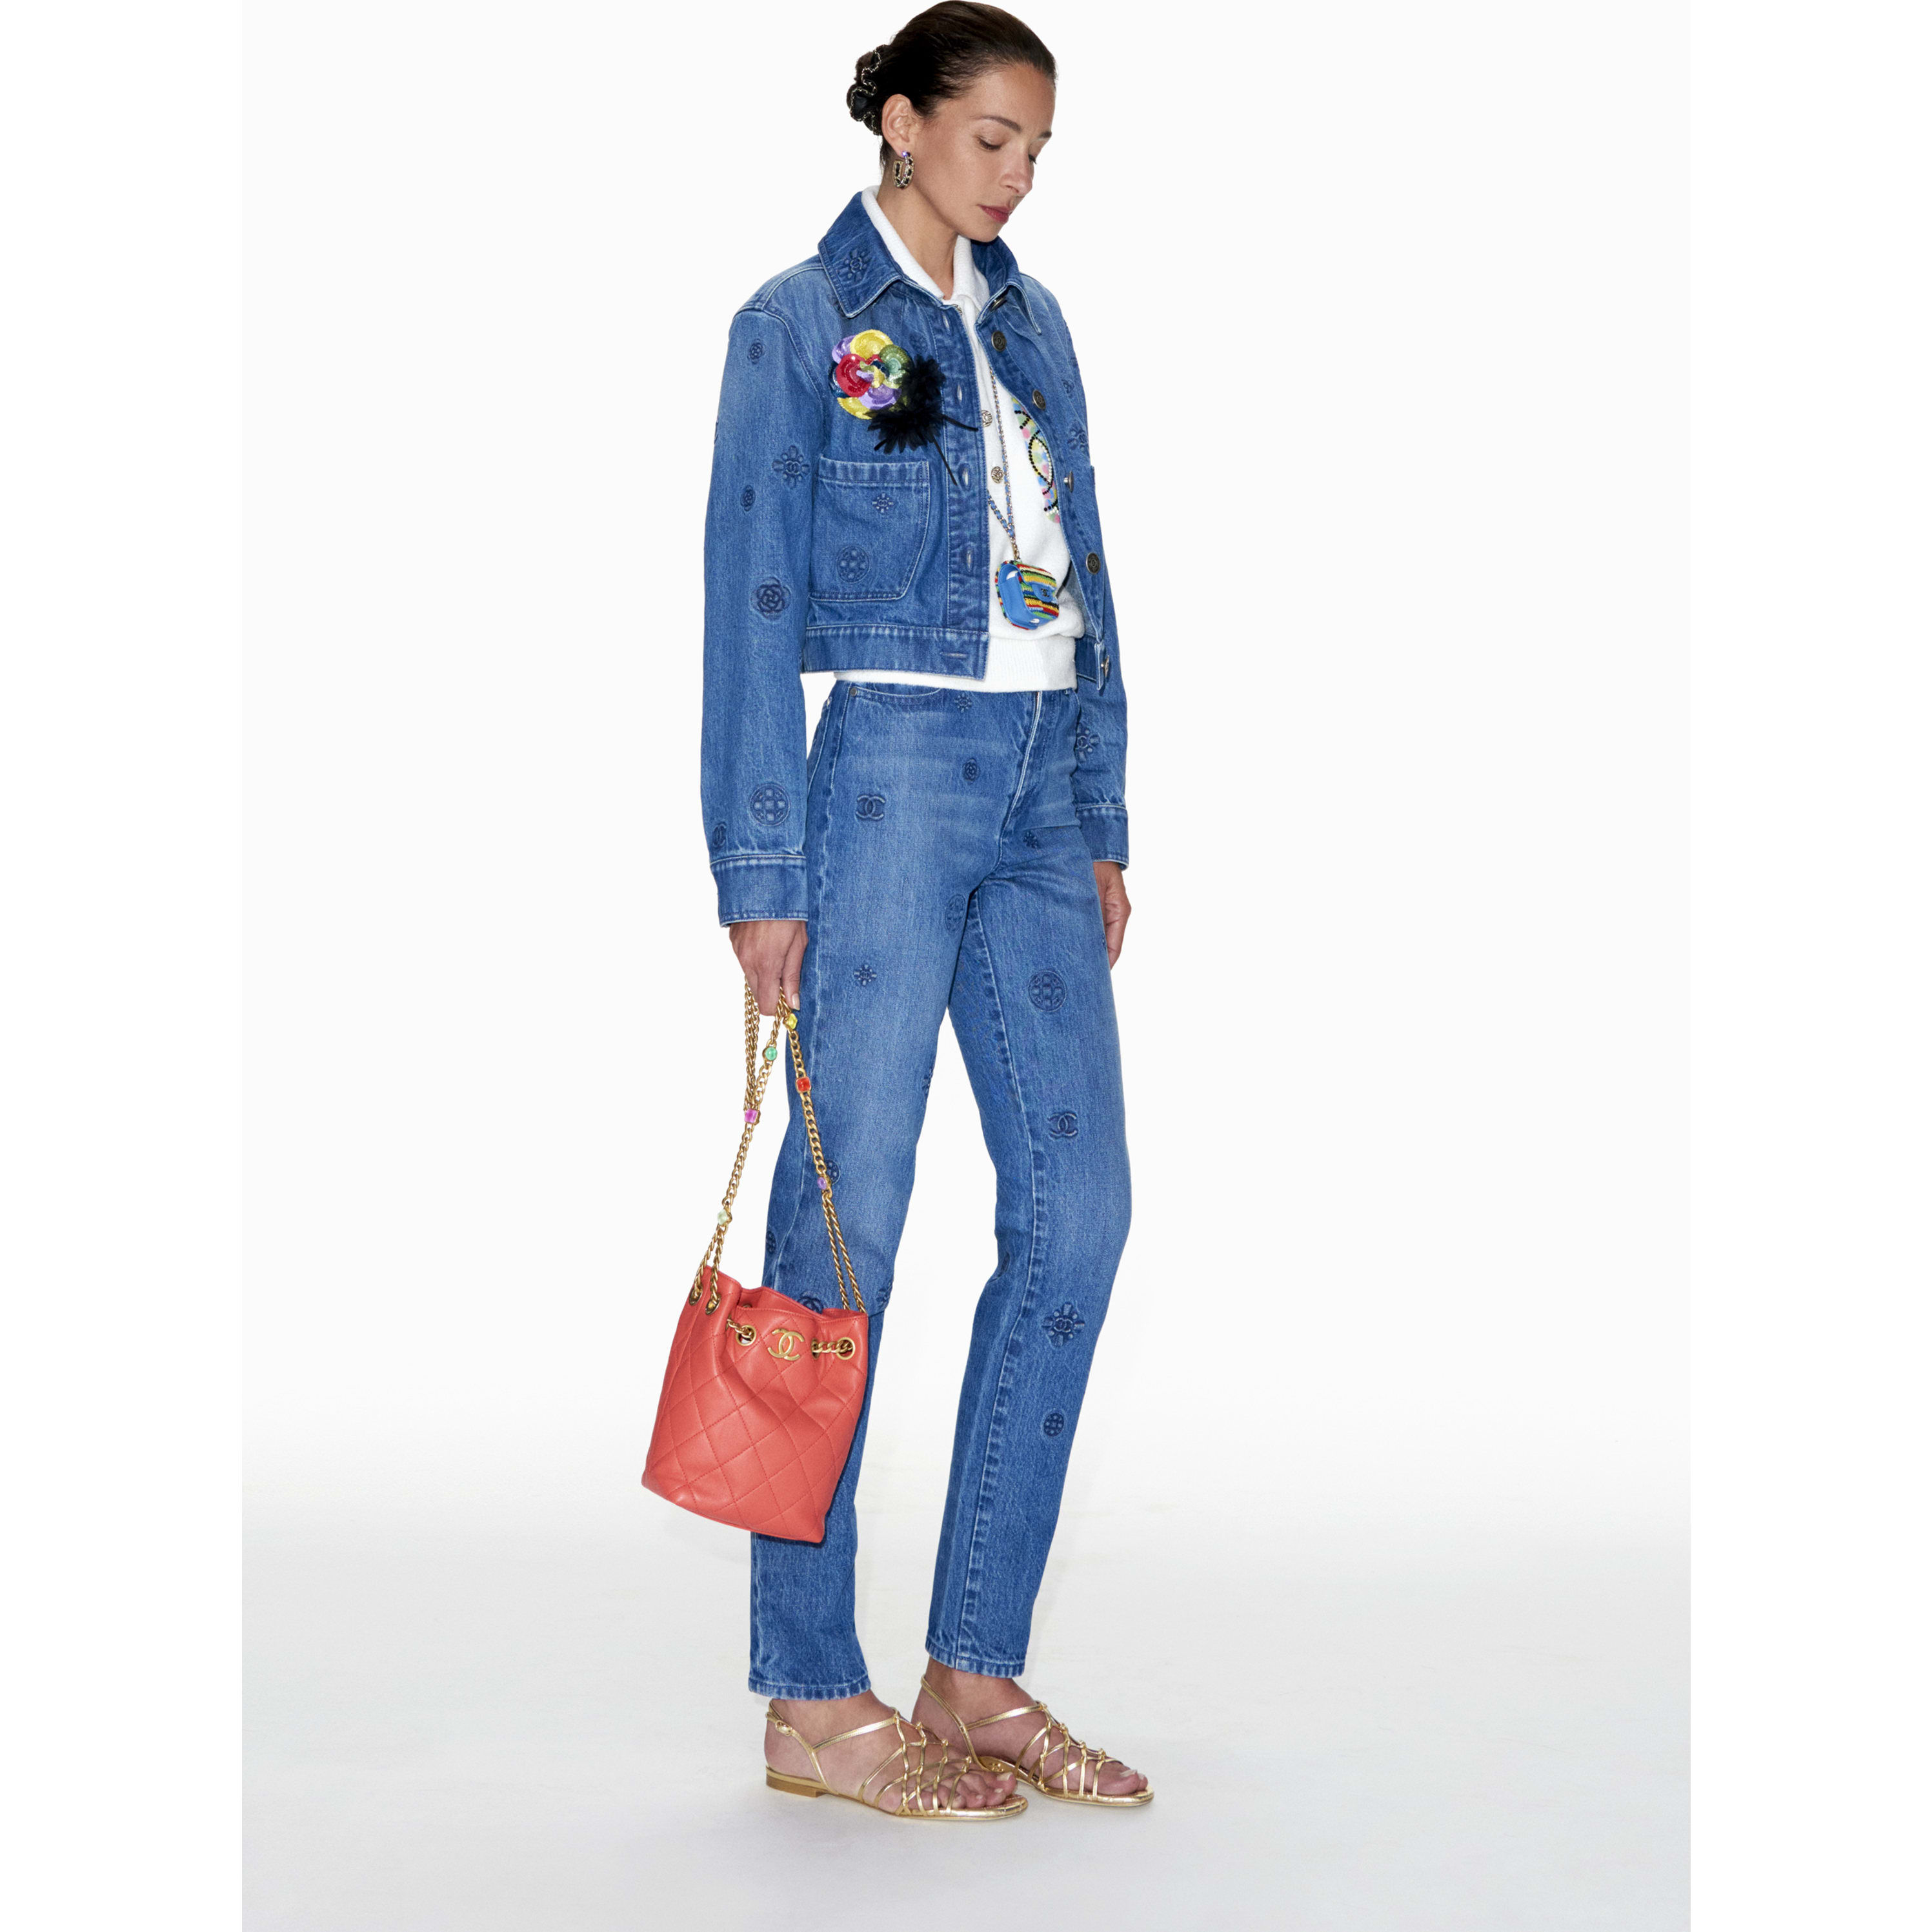 Jeans - Blue - Embroidered Washed Denim - CHANEL - Default view - see standard sized version